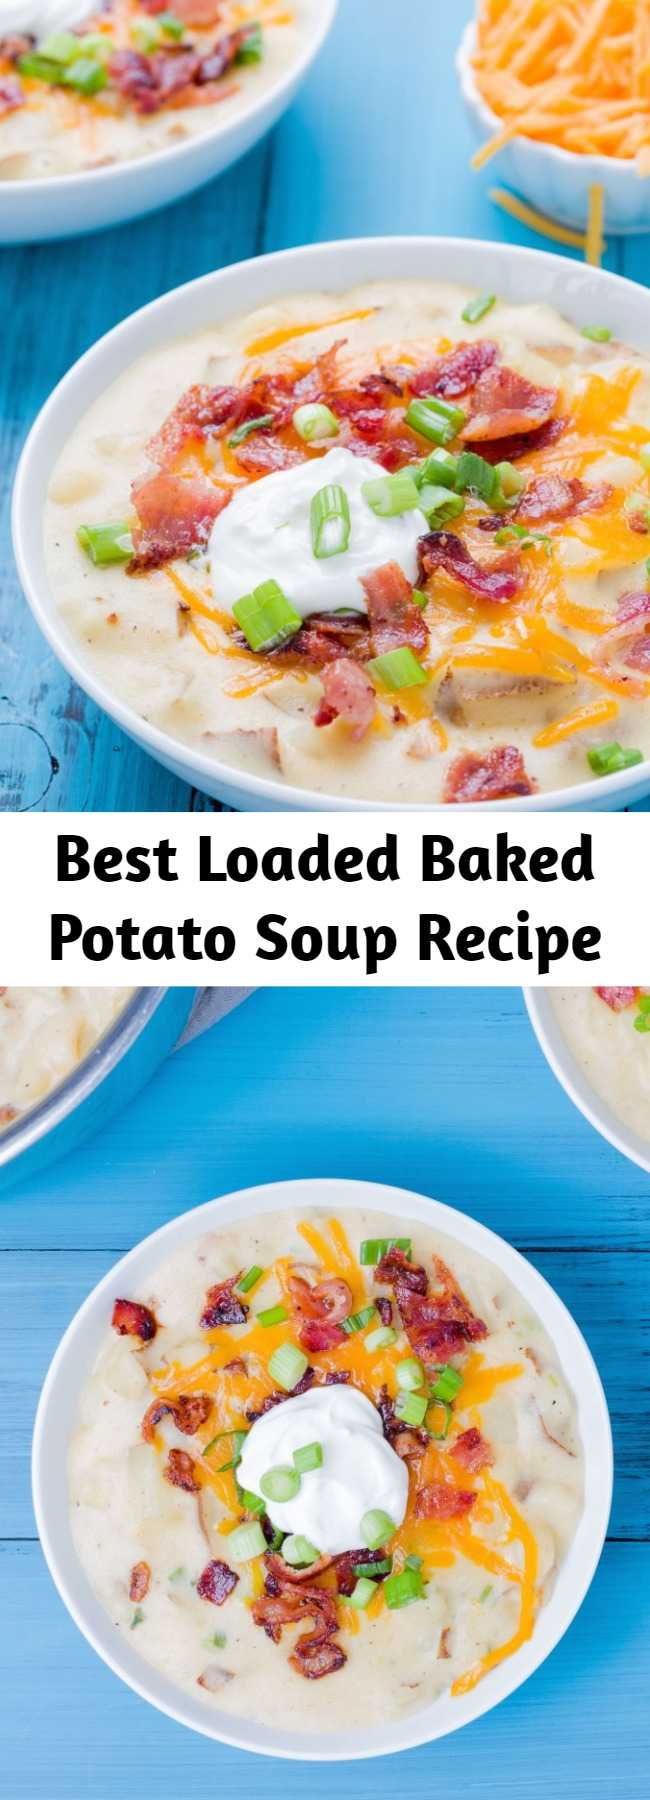 Best Loaded Baked Potato Soup Recipe - Imagine all your favorite baked potato toppings—bacon, cheddar, sour cream, green onions—in a spoon with this recipe.